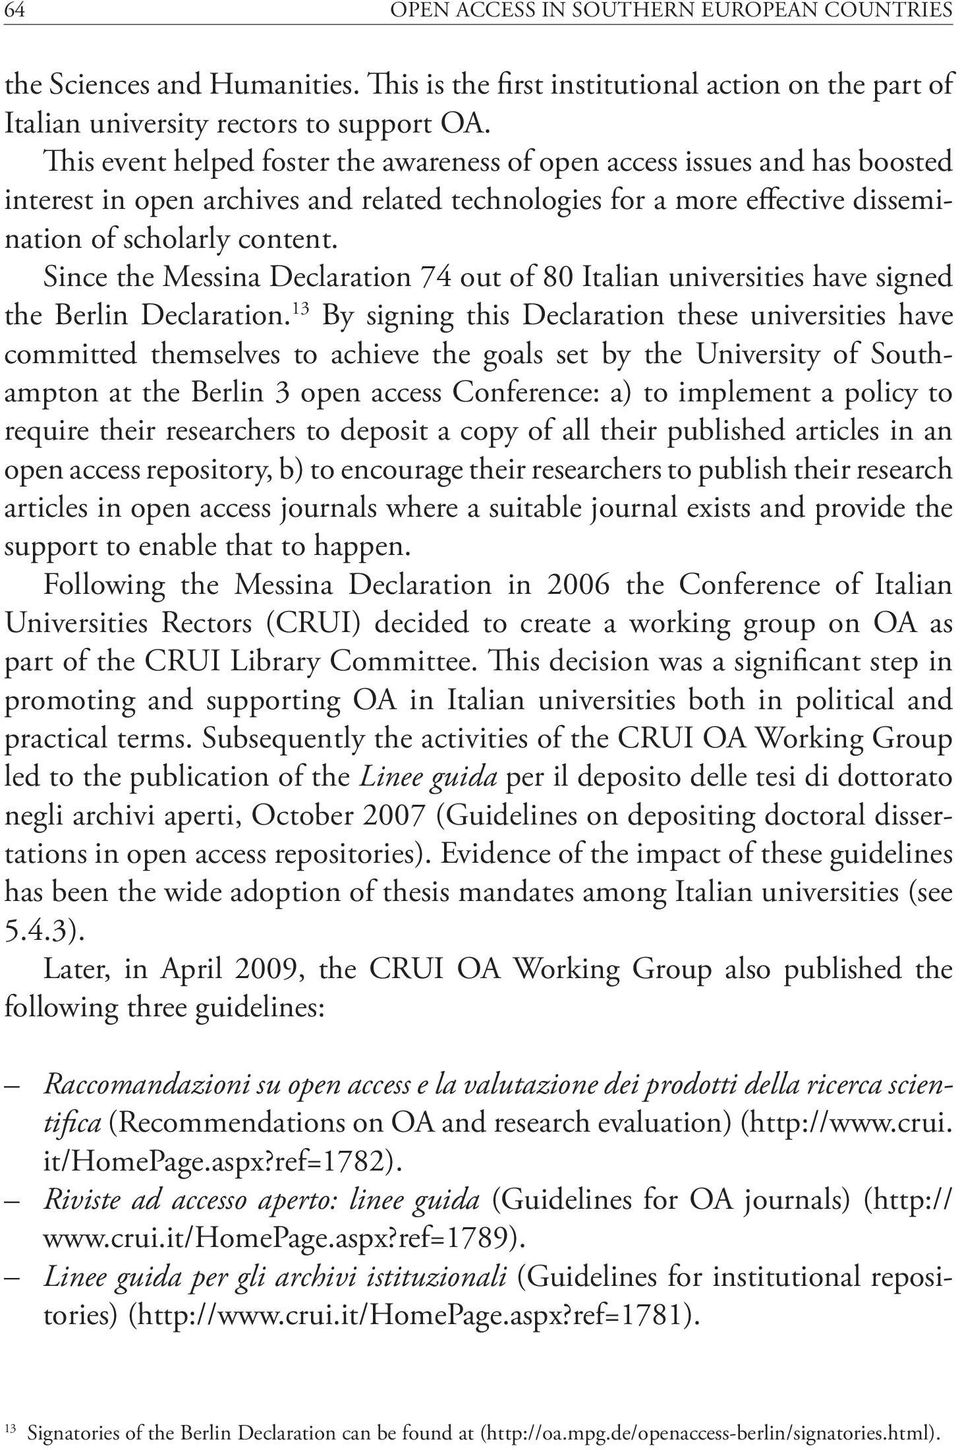 Since the Messina Declaration 74 out of 80 Italian universities have signed the Berlin Declaration.